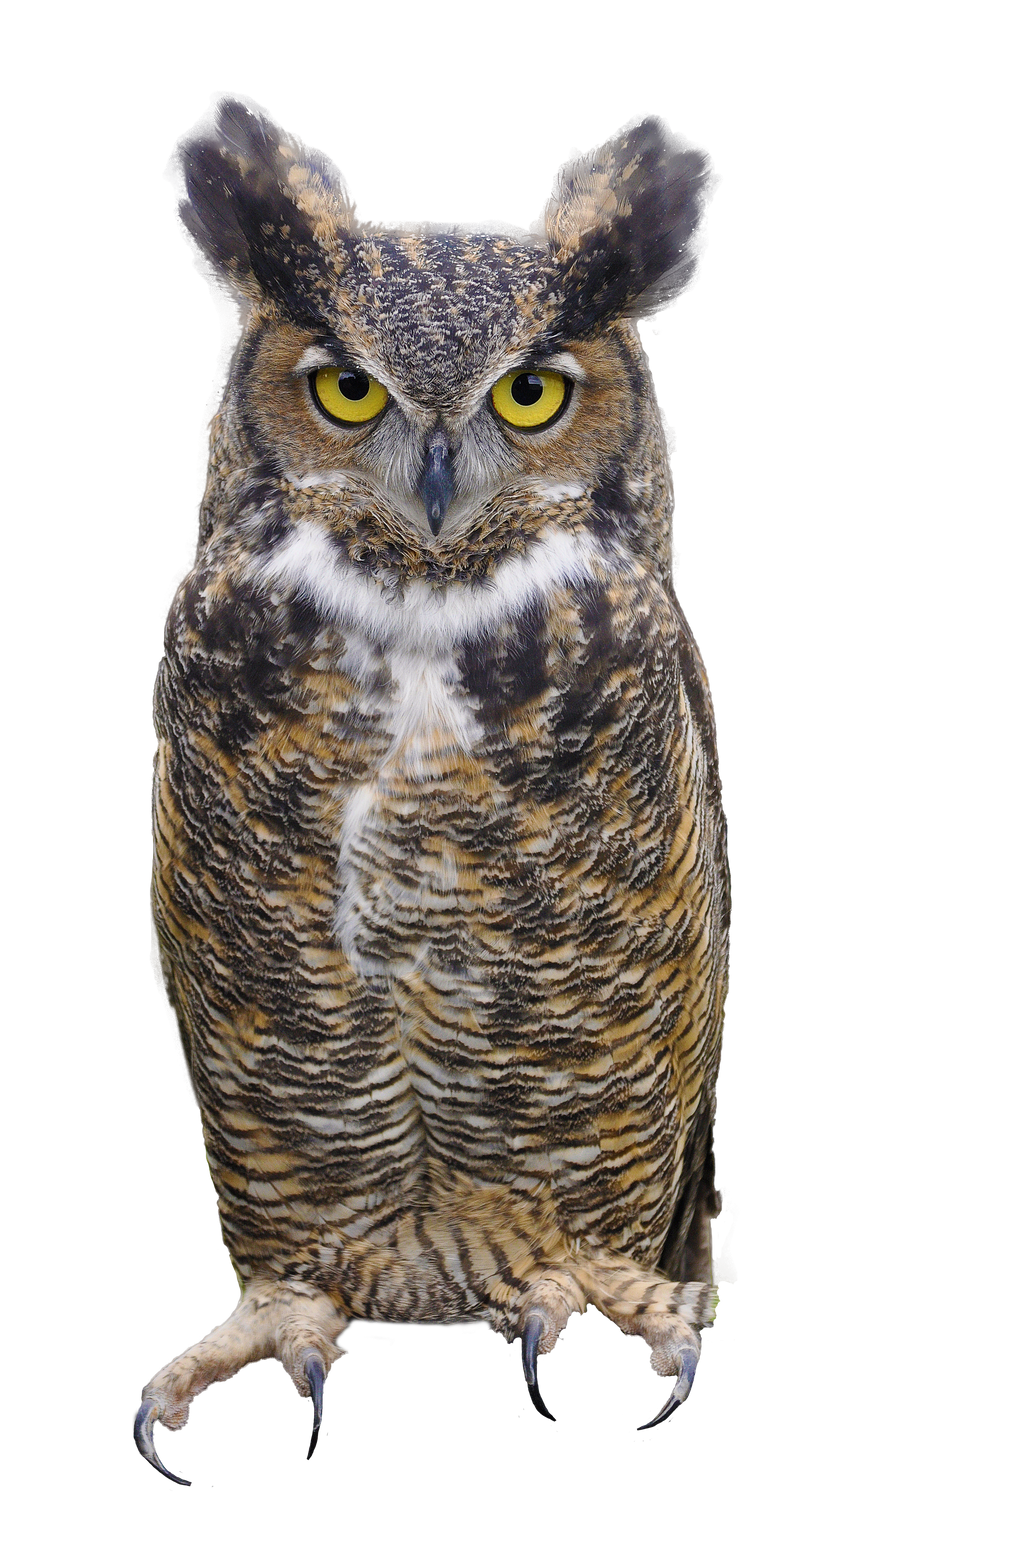 023+ Great Horned Owl PNG by JustmeTD on DeviantArt